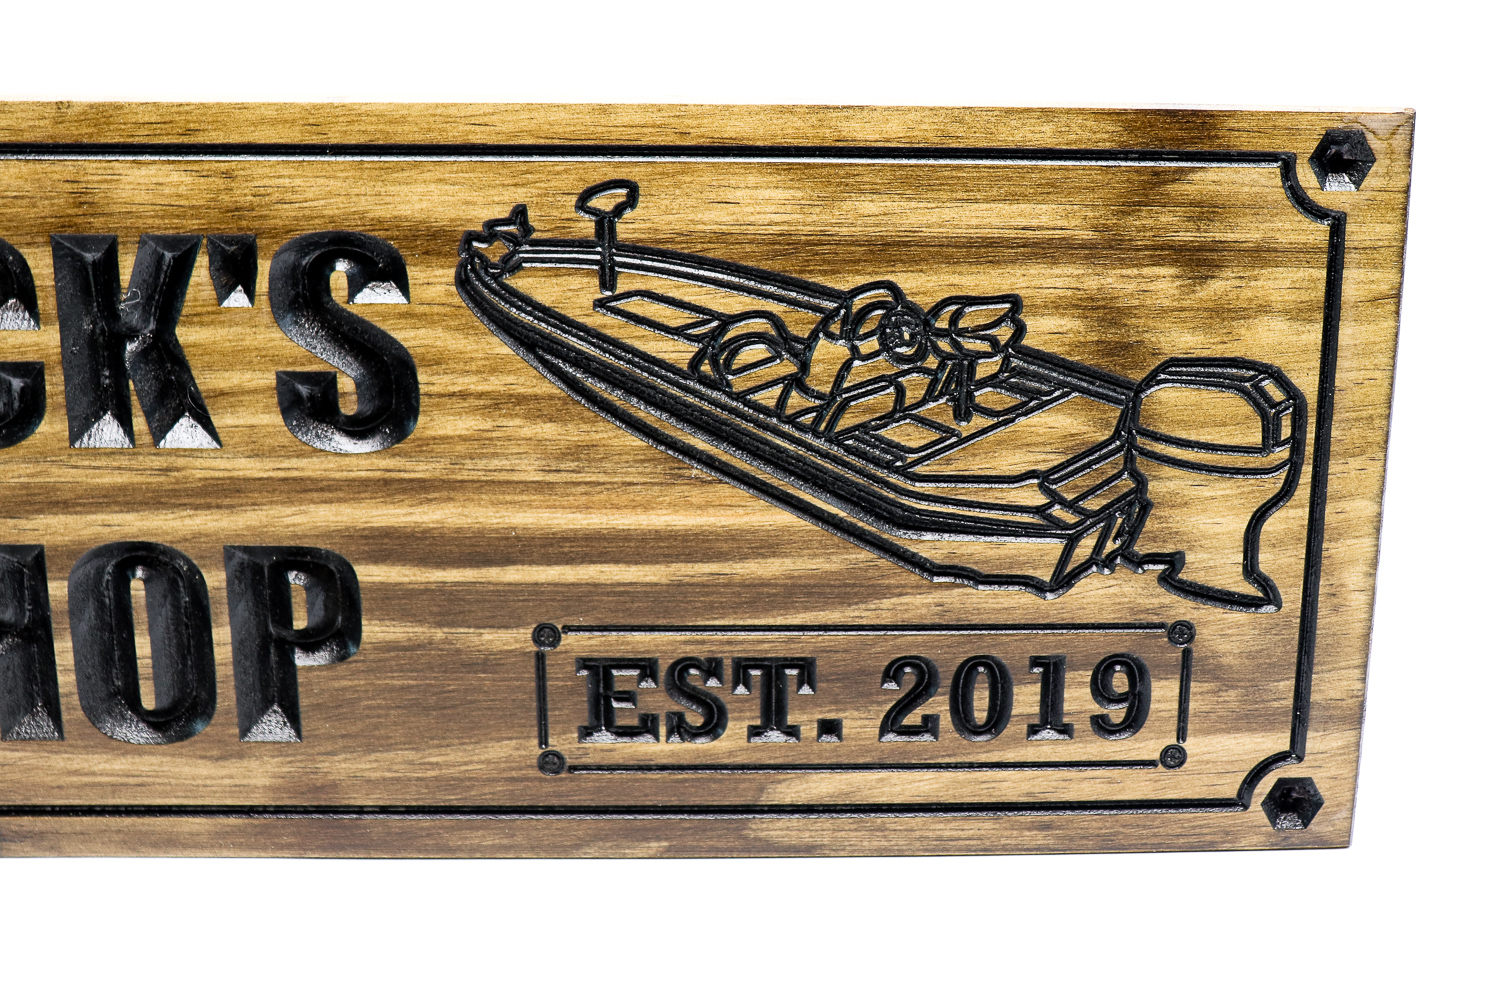 Bass boat and Dune buggy shop sign